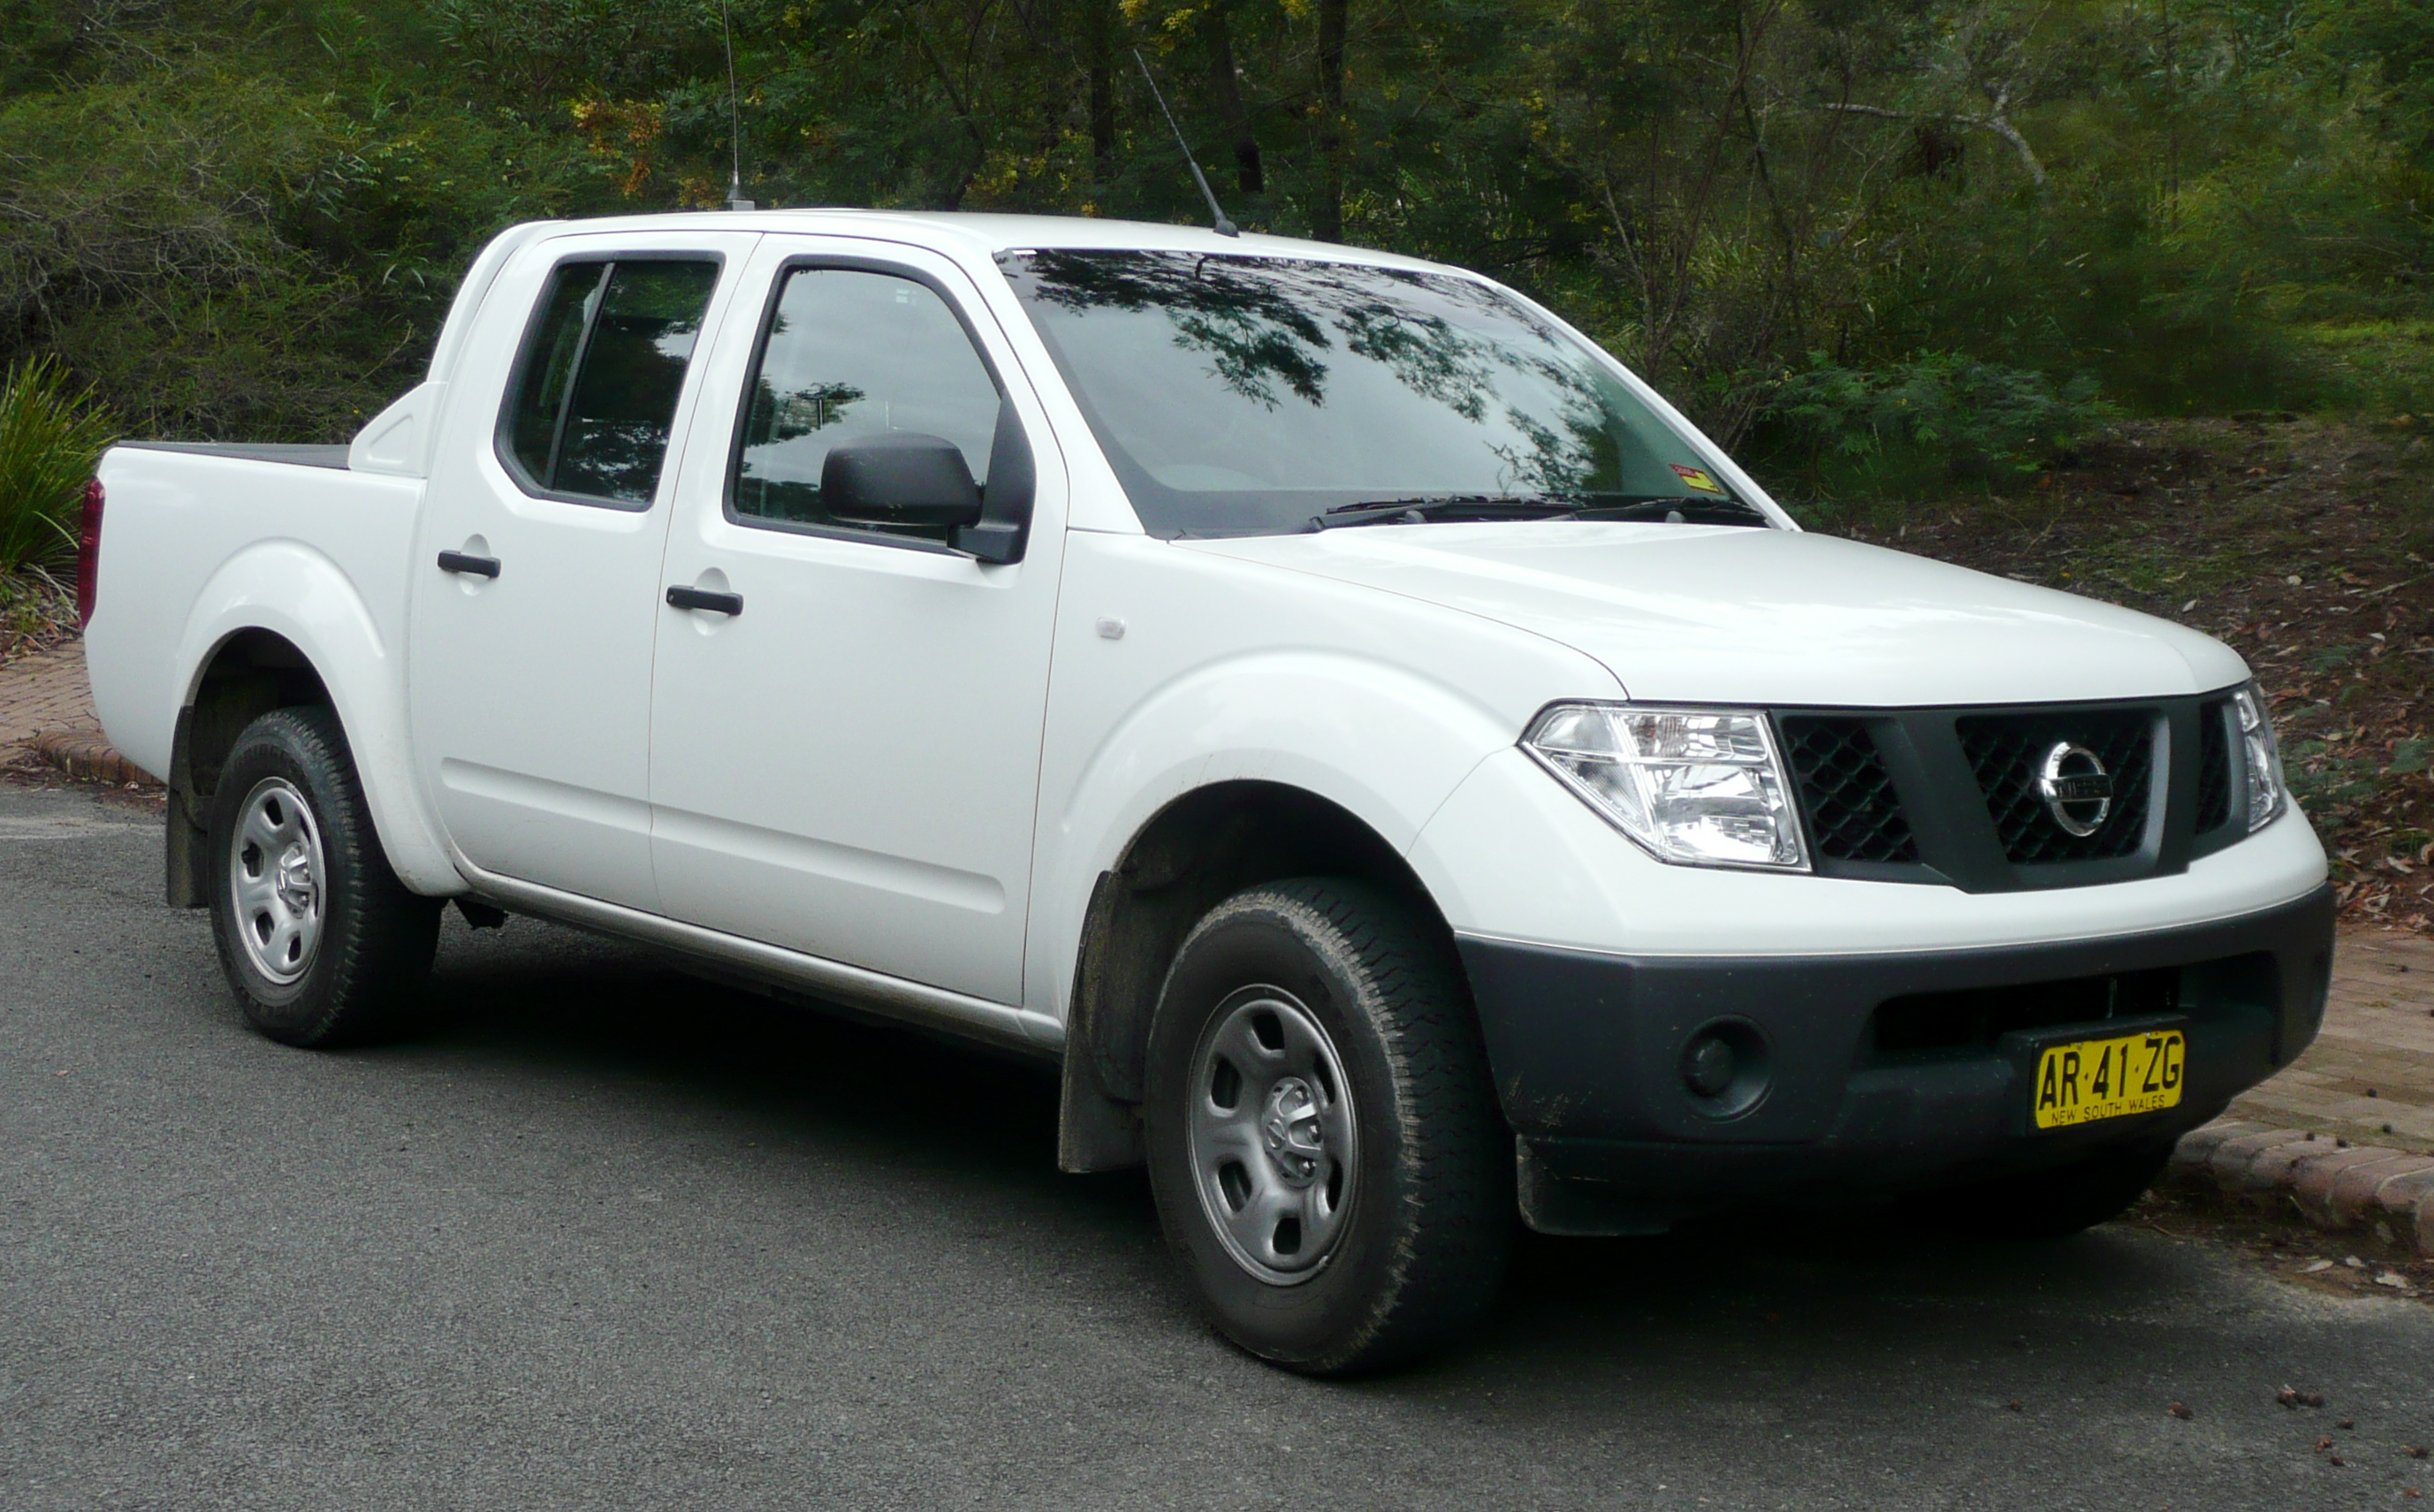 Nissan Navara #2 - high quality Nissan Navara pictures on MotorInfo.org